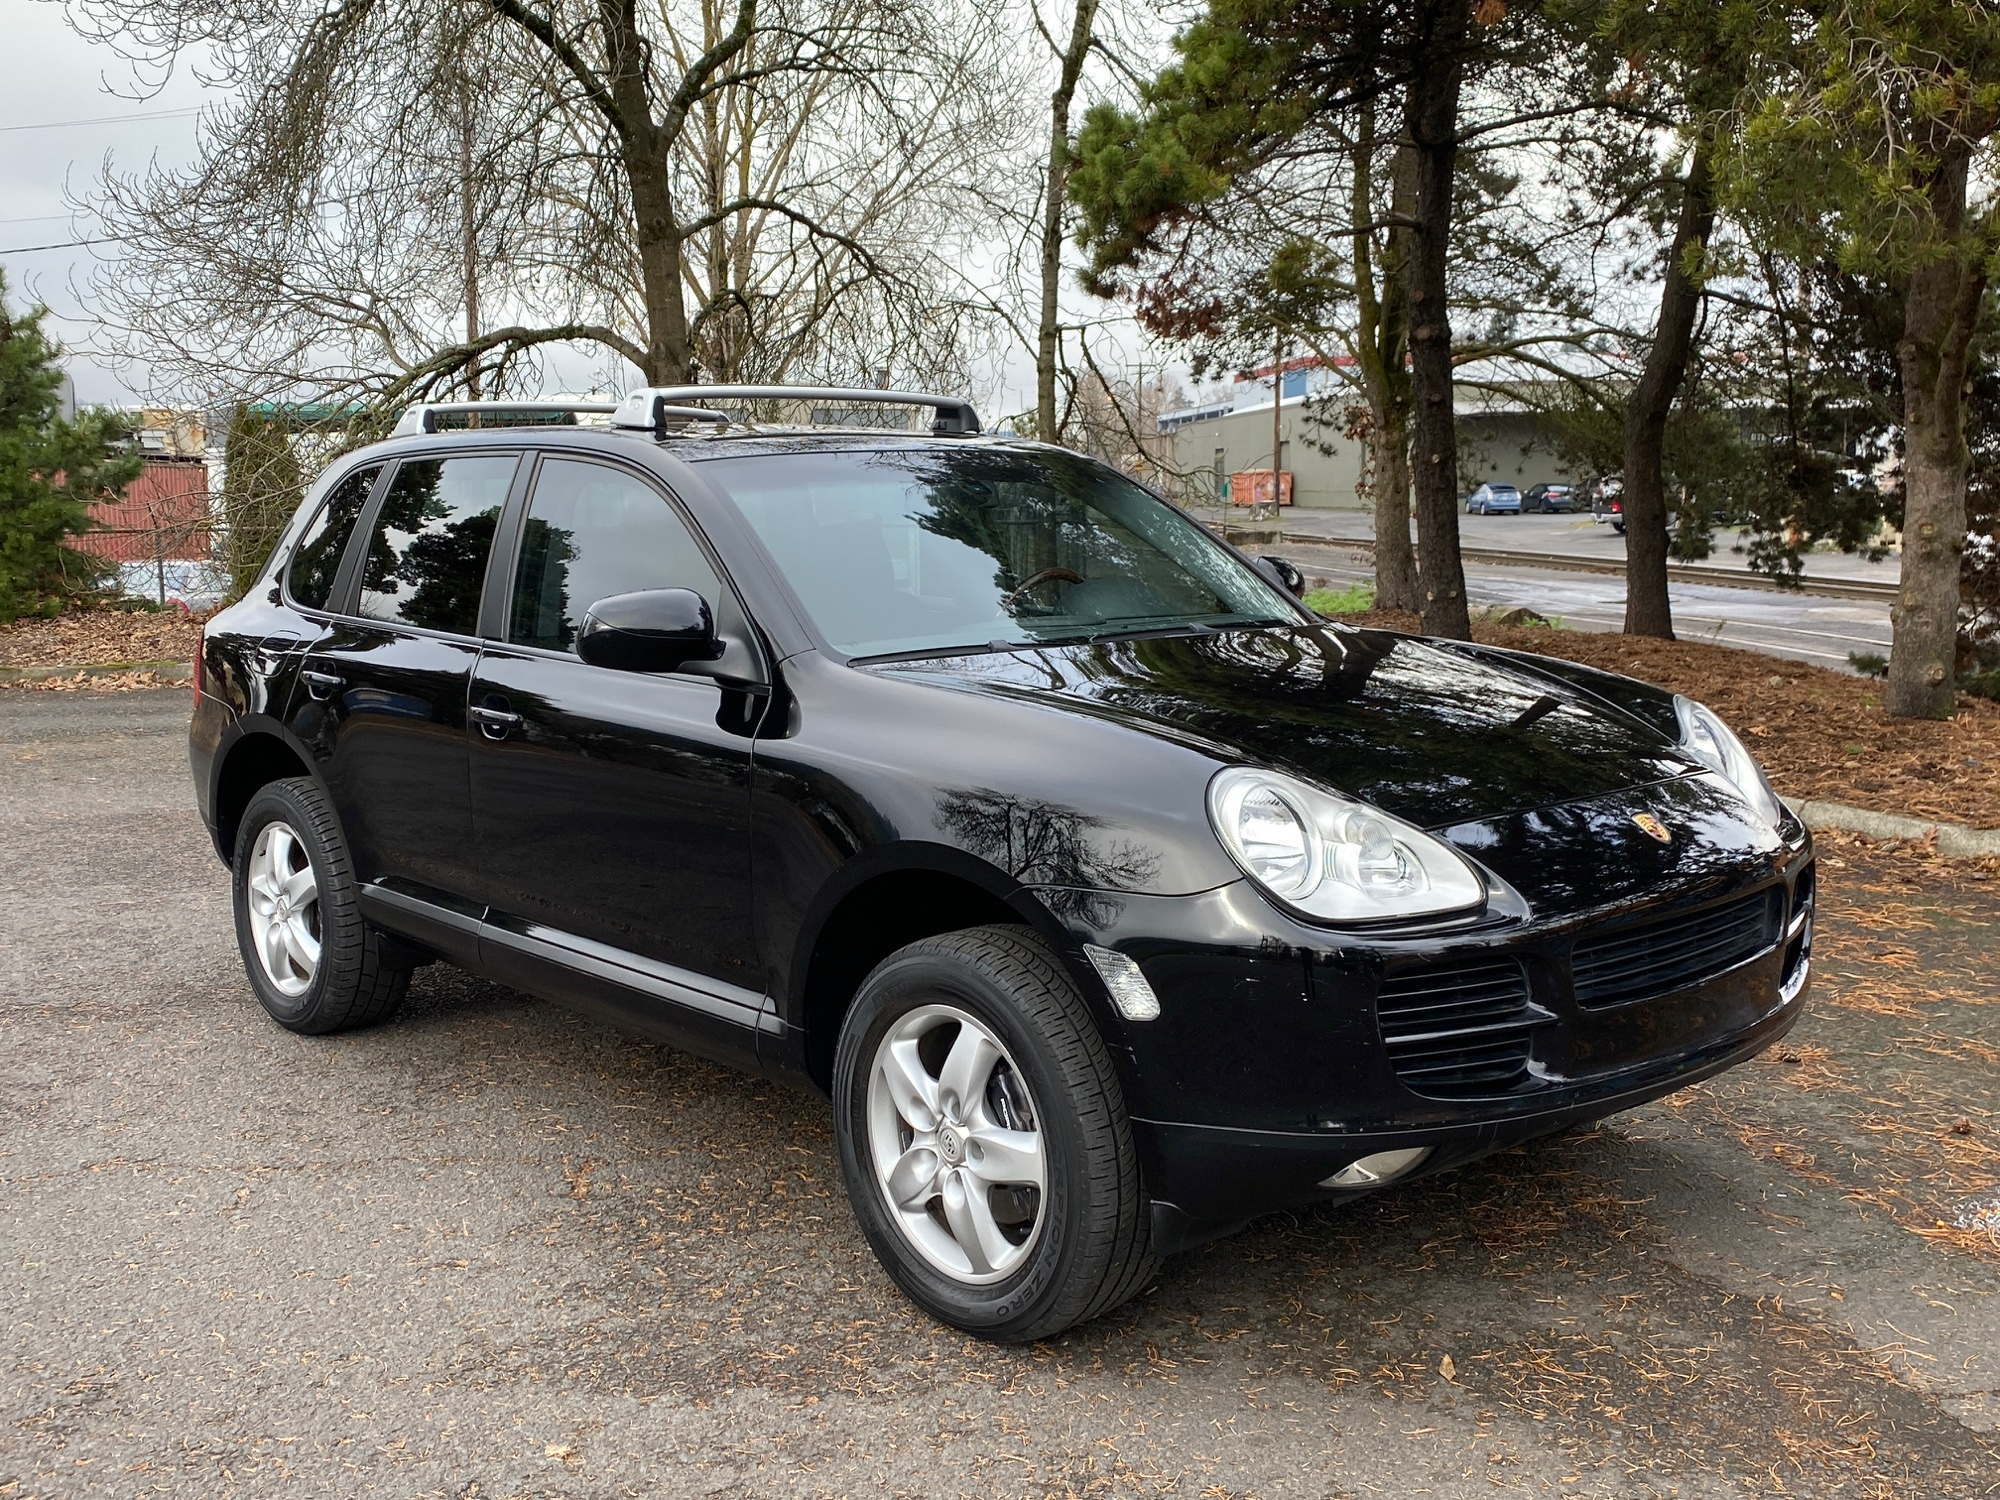 2006 Porsche Cayenne Awd Sold Bridge City Motors